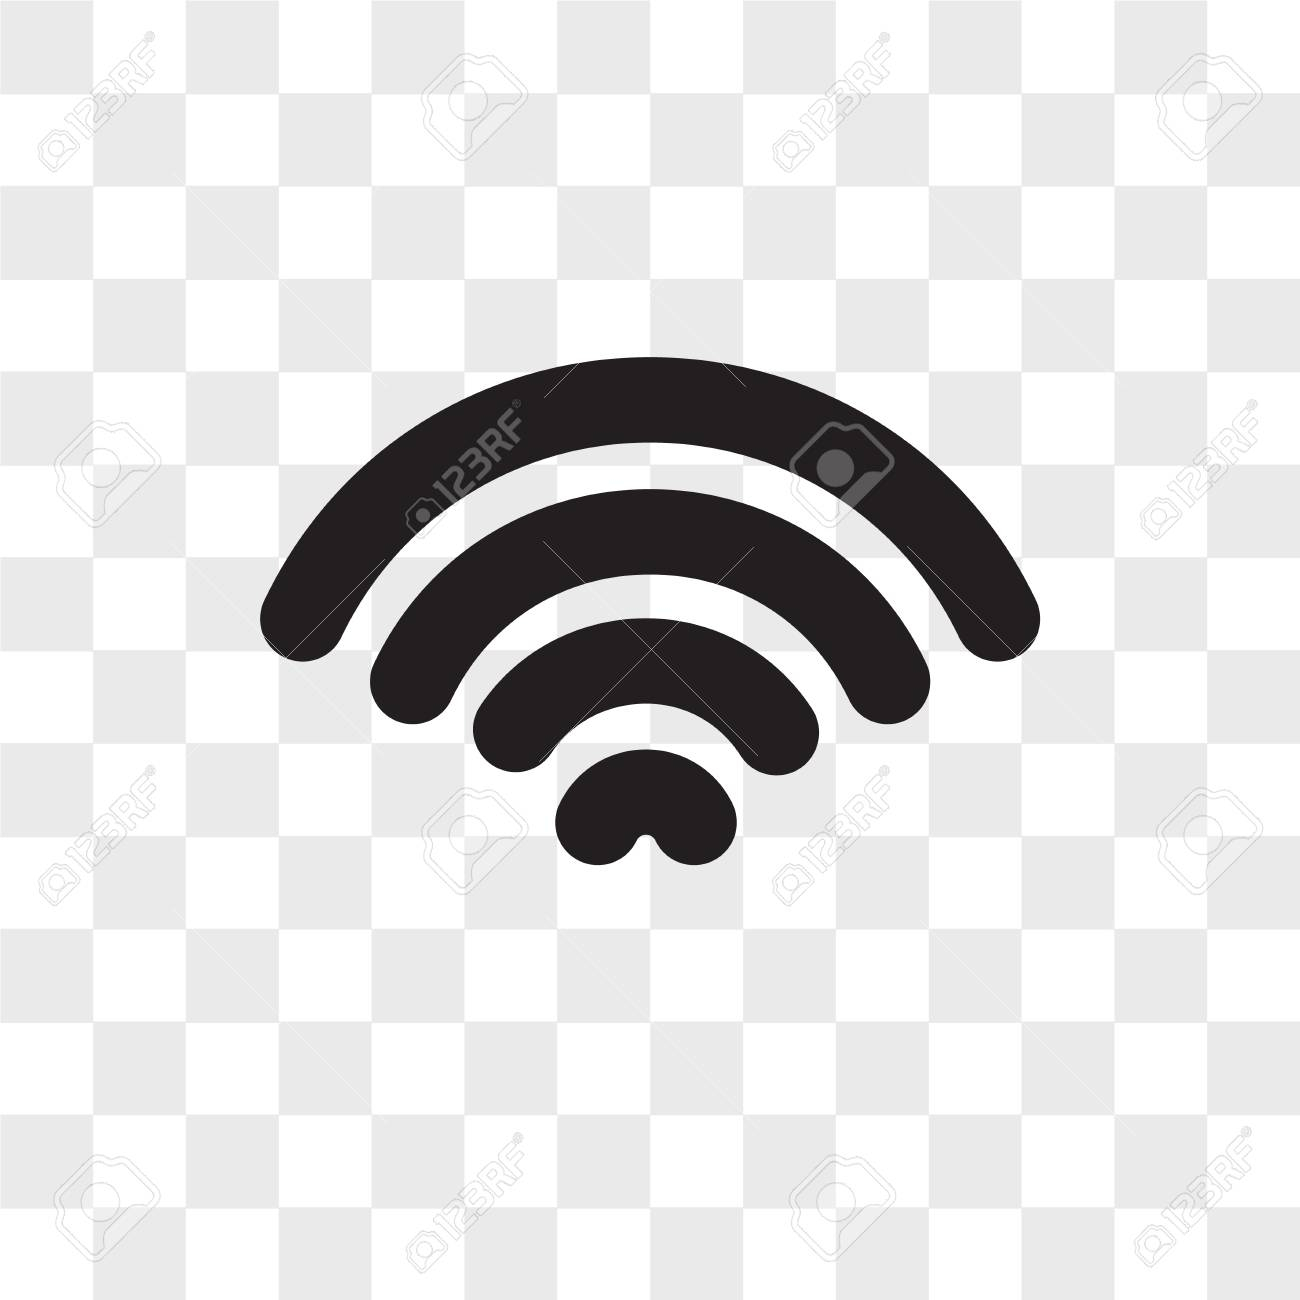 Wifi Vector Icon Isolated On Transparent Background Wifi Logo Royalty Free Cliparts Vectors And Stock Illustration Image 108102136